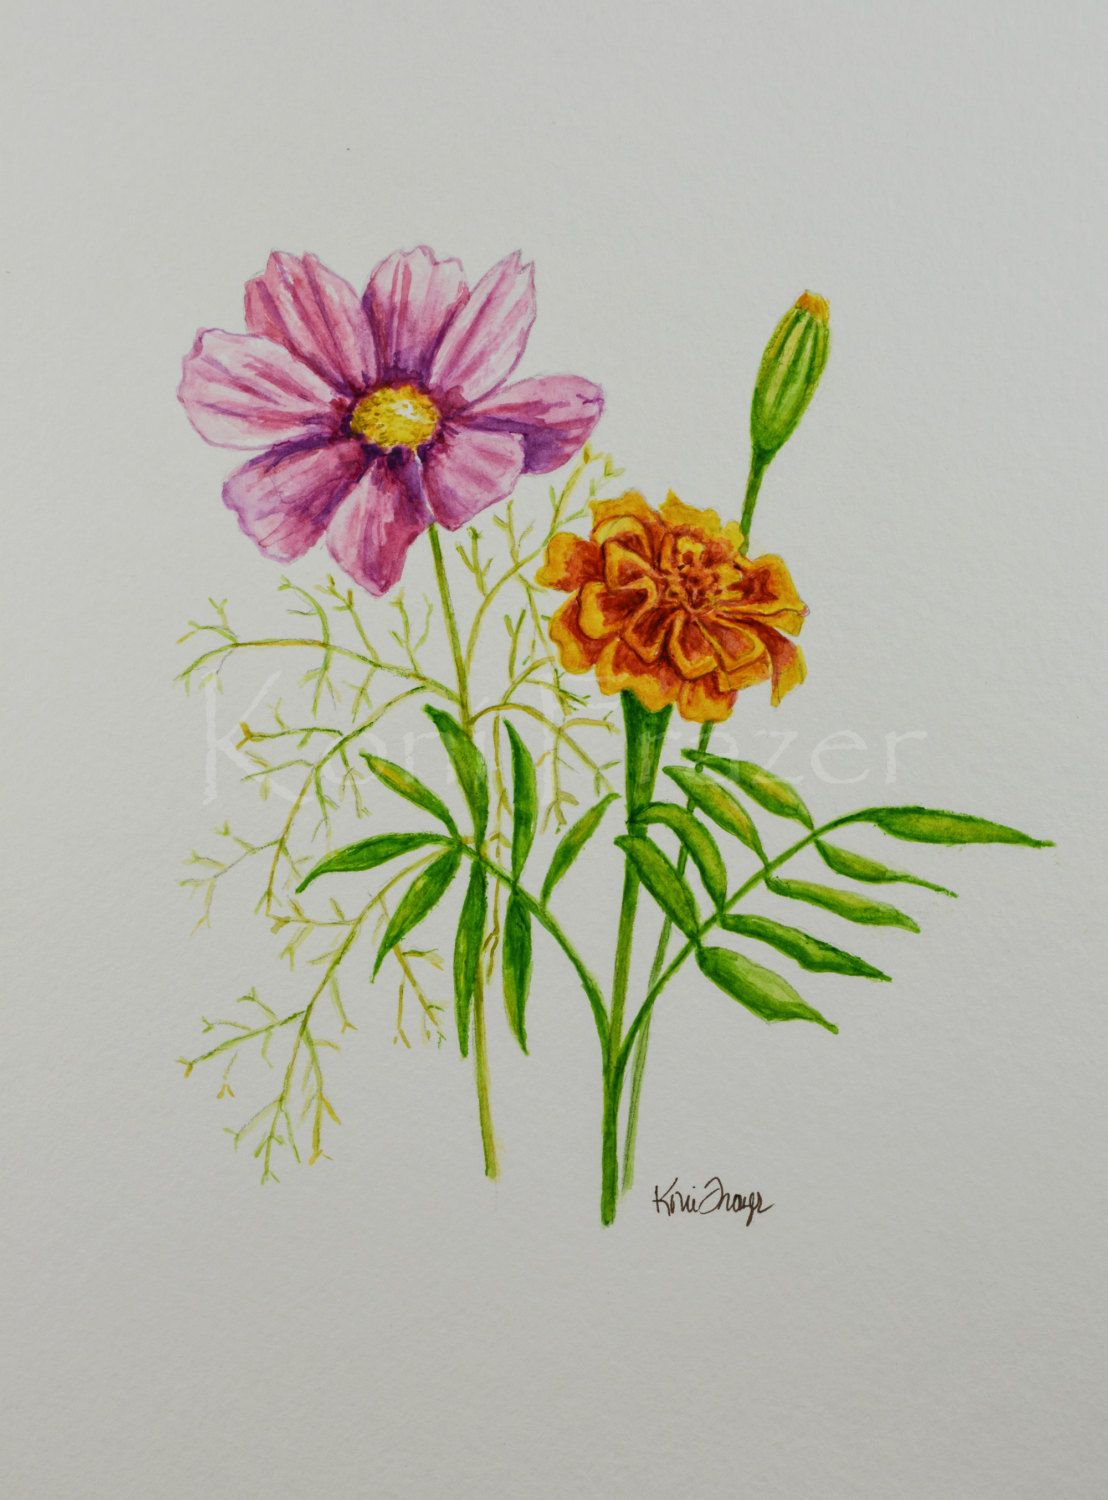 Cosmos and marigold october birthday flower original for Birth flower october tattoo